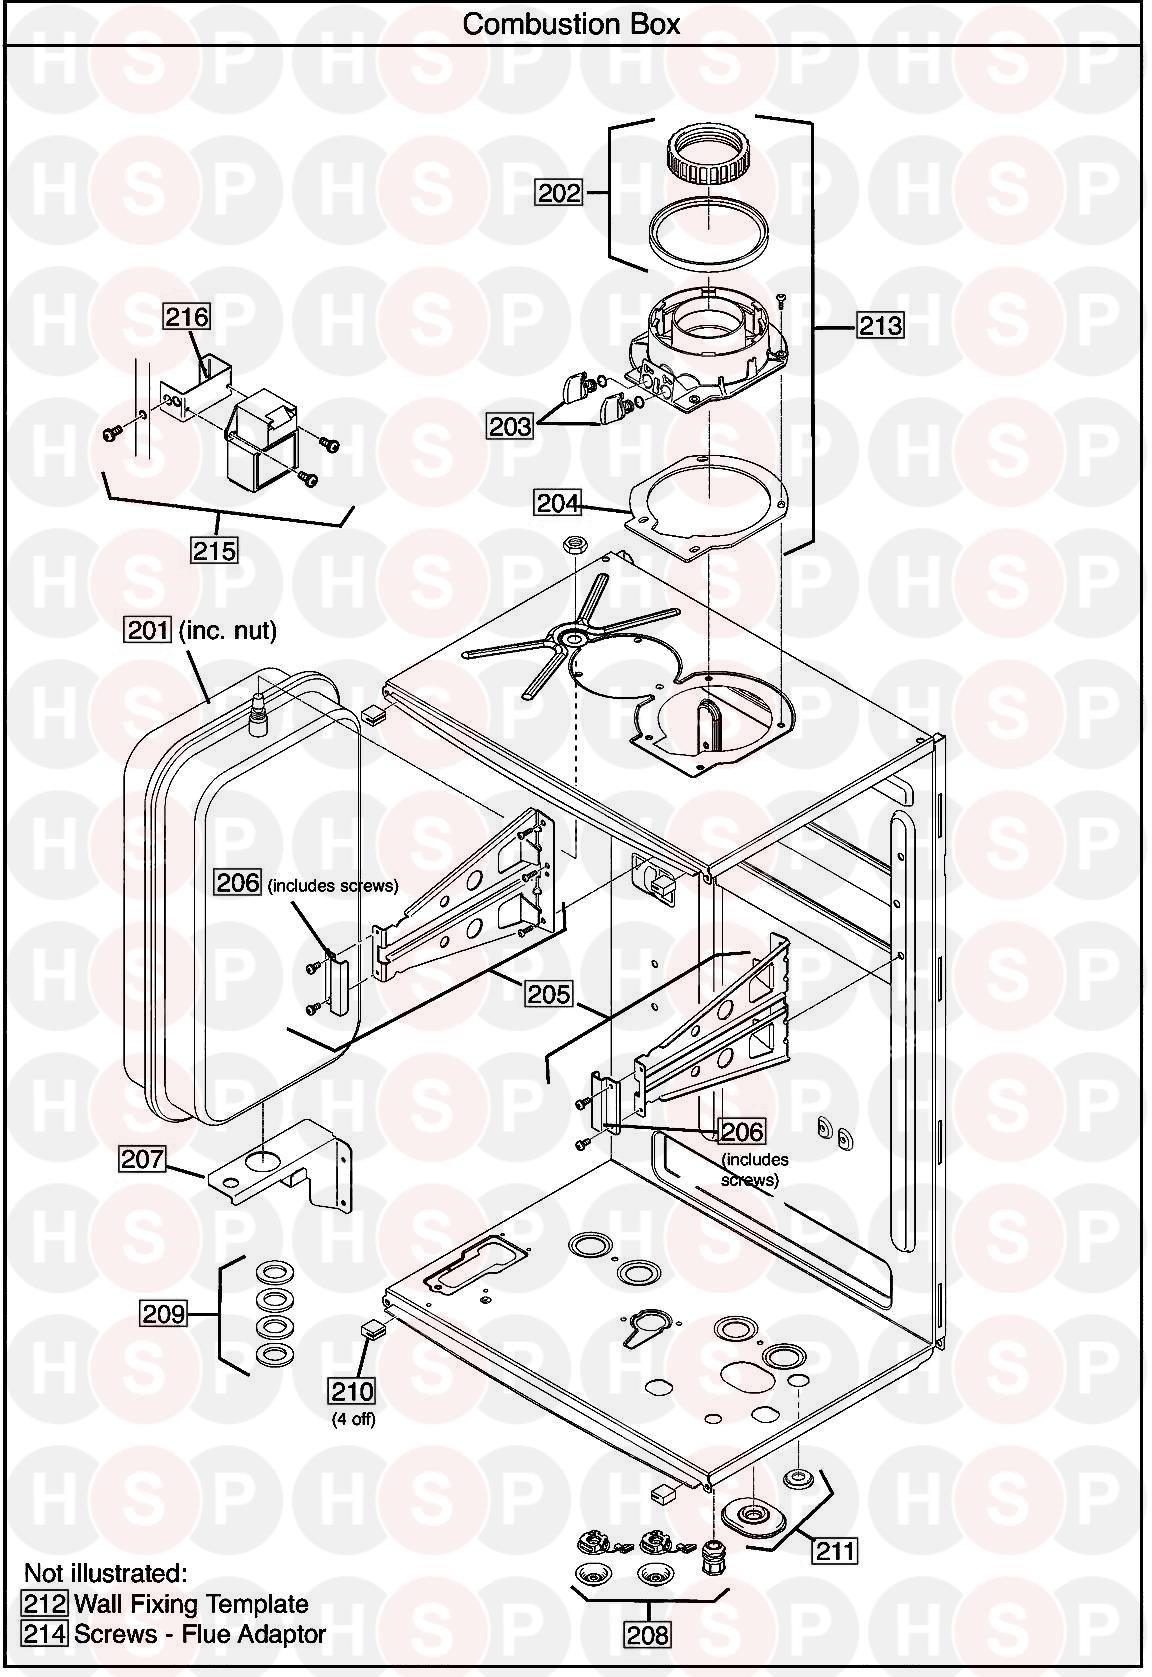 COMBUSTION BOX diagram for Baxi ECOBLUE Advance Combi 33